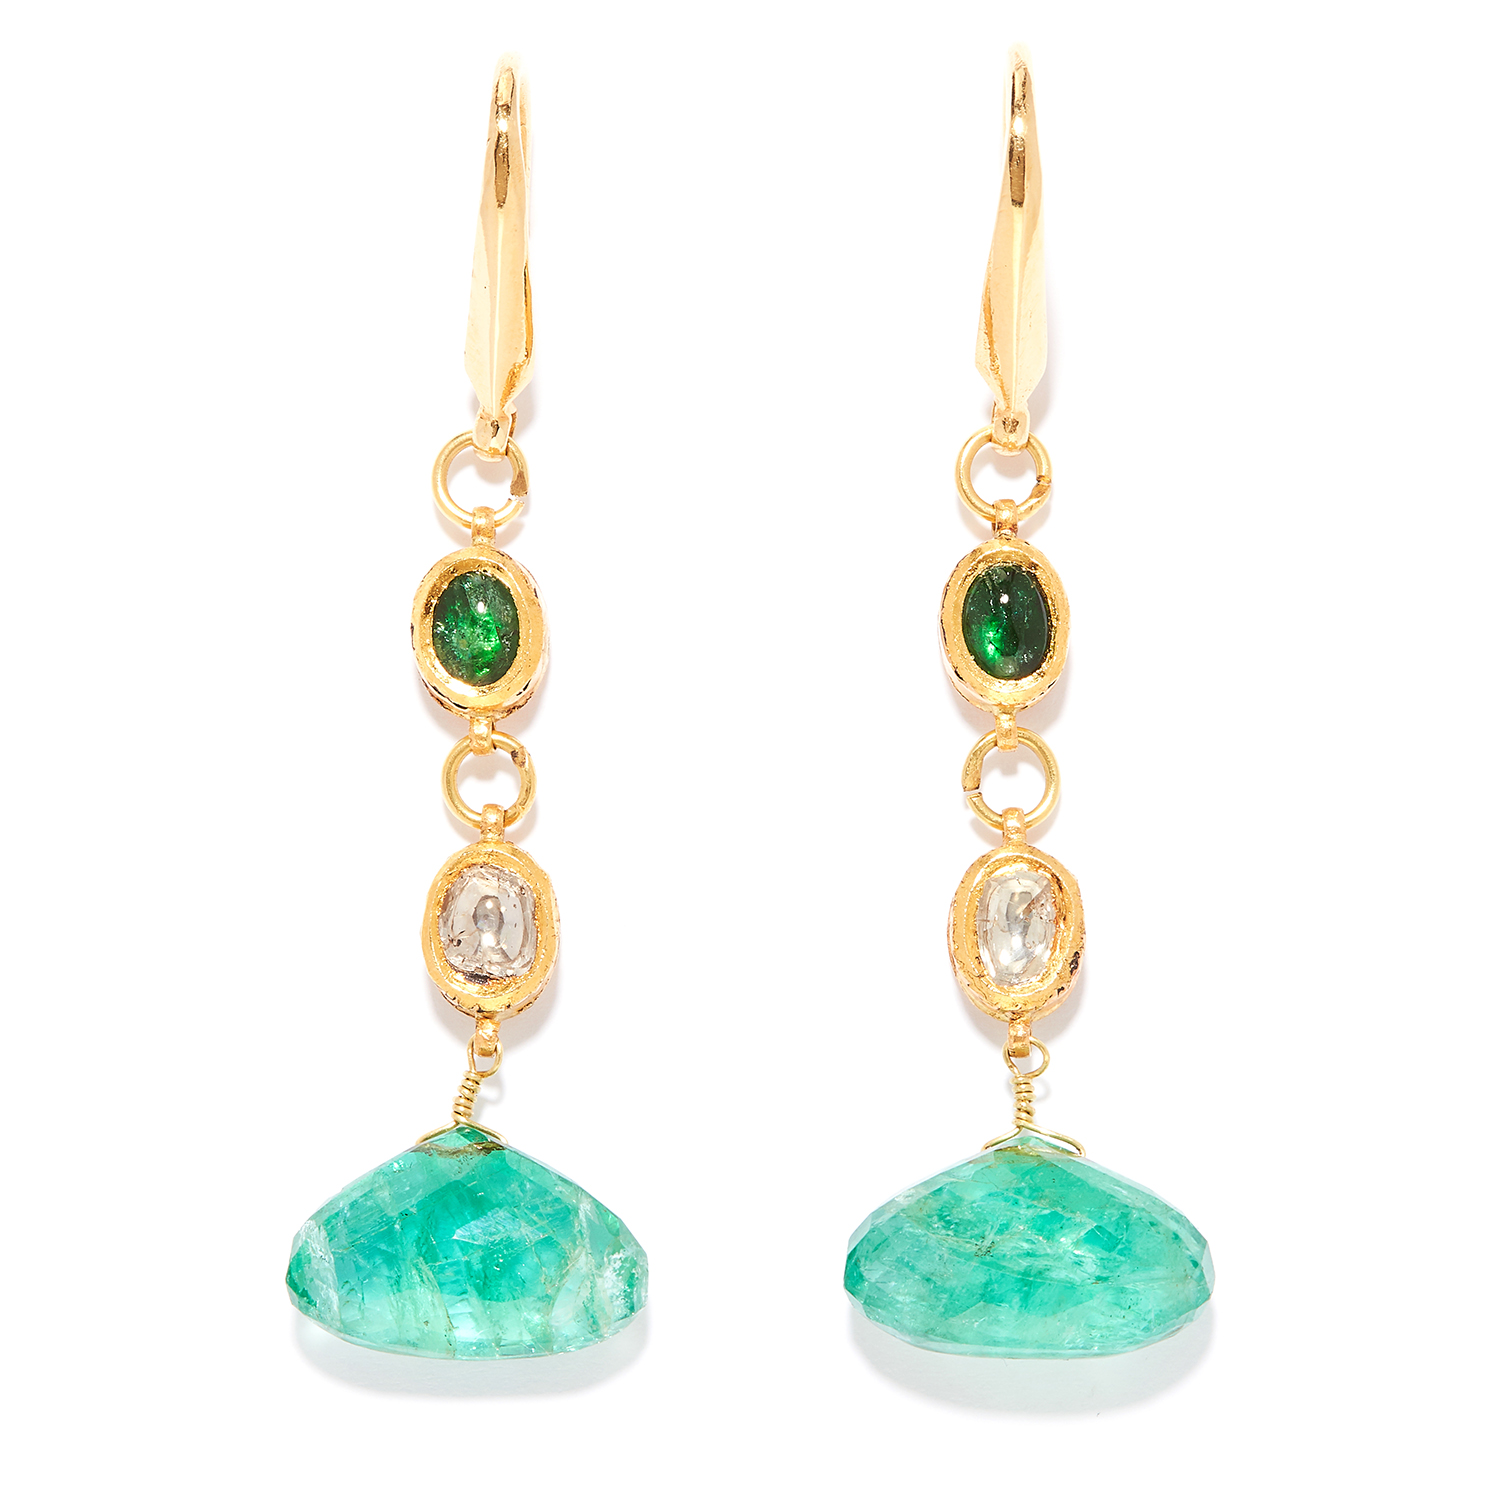 EMERALD AND DIAMOND DROP EARRINGS, INDIAN in high carat yellow gold, each comprising of a cabochon